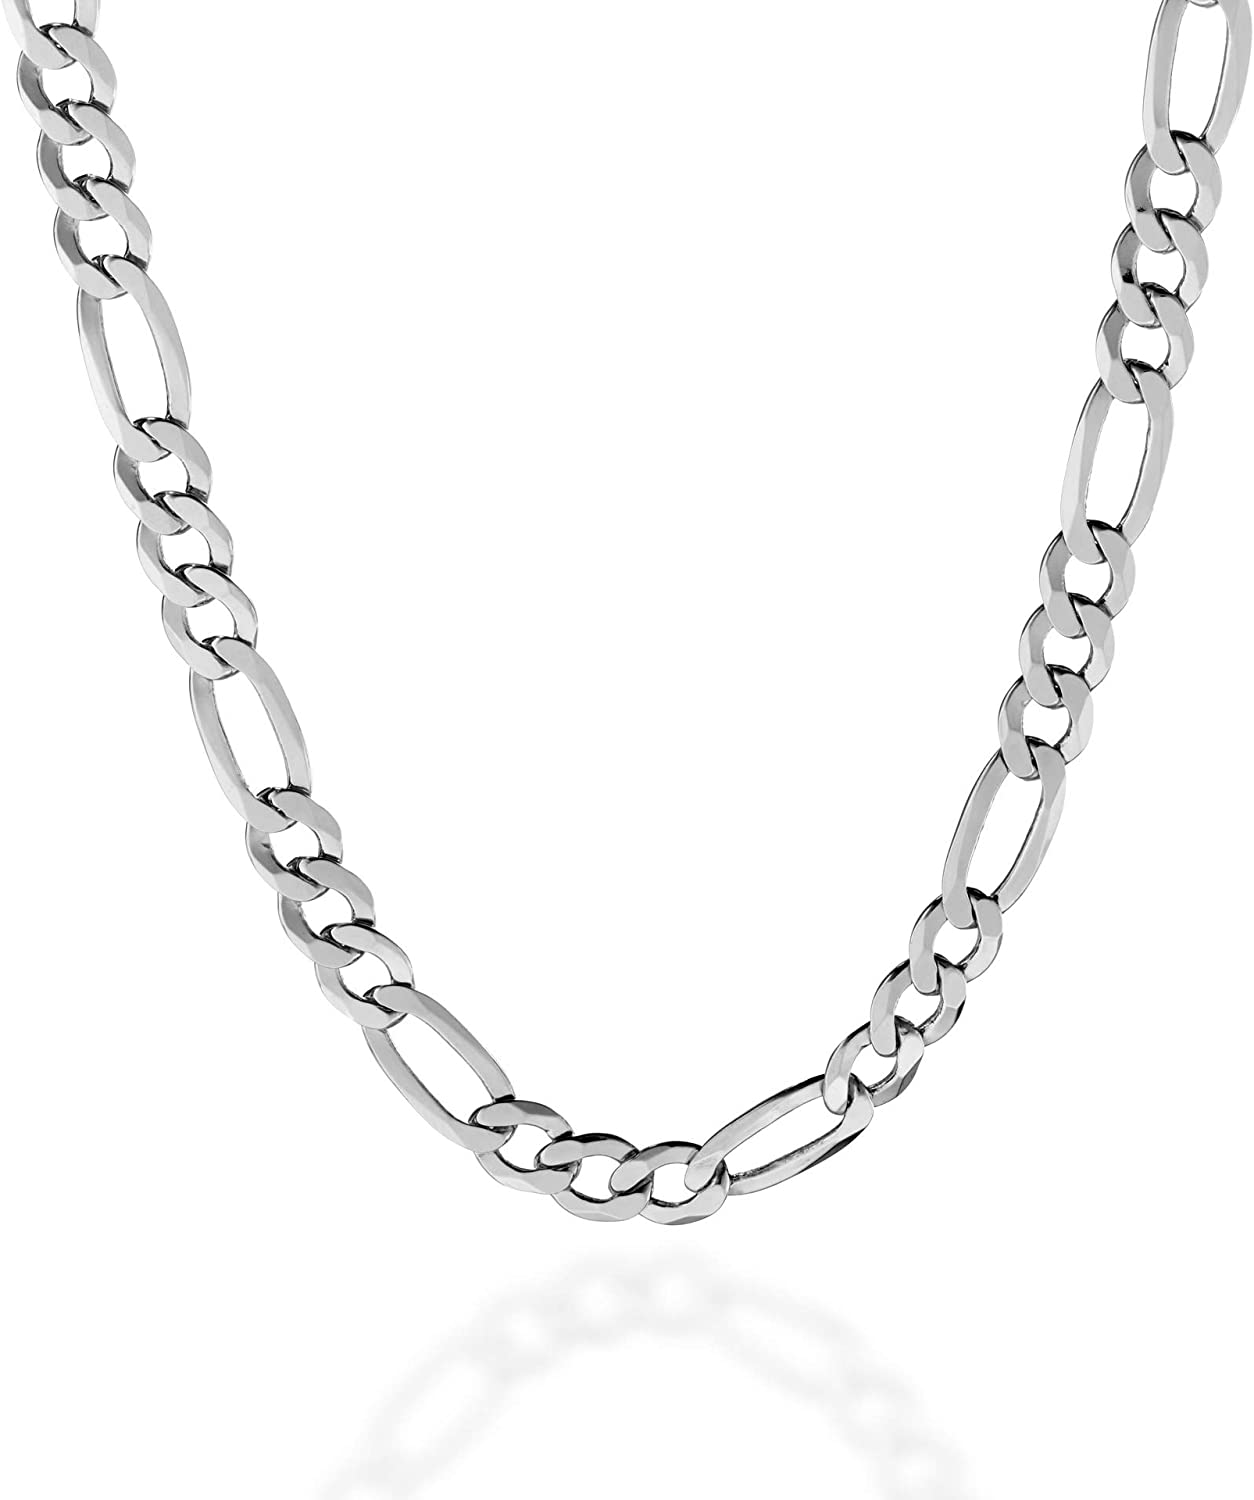 Authentic Vintage 925 7mm Italy Figaro Link Chain Necklace 35 Gr. 22 In